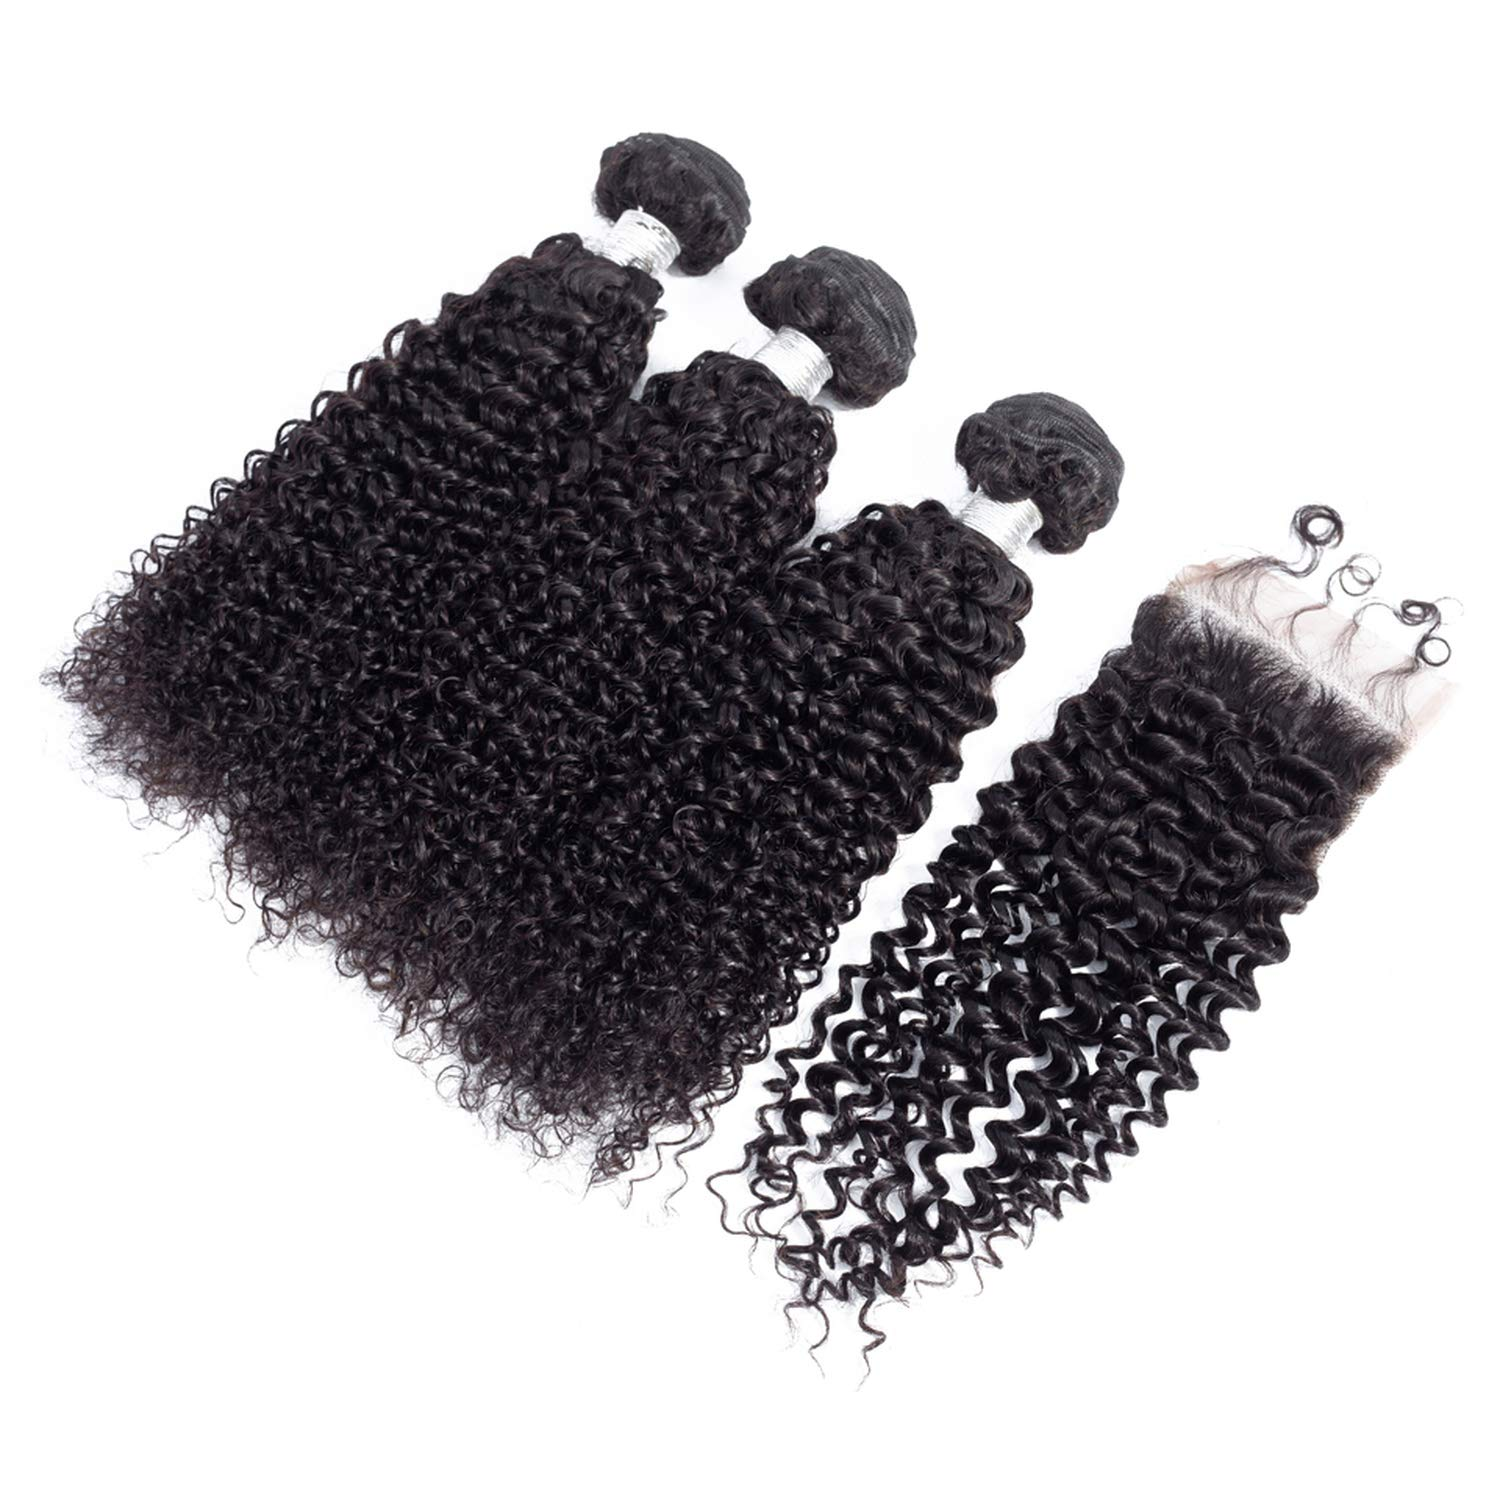 100% Peruvian Hair 4 PCS/Lot Kinky Curly Human Hair Bundles With 44 Closure With Baby Hair Natural Color,Natural Color,12 12 12 & Closure10,Free Part 719vQuDhpRL._SL1500_